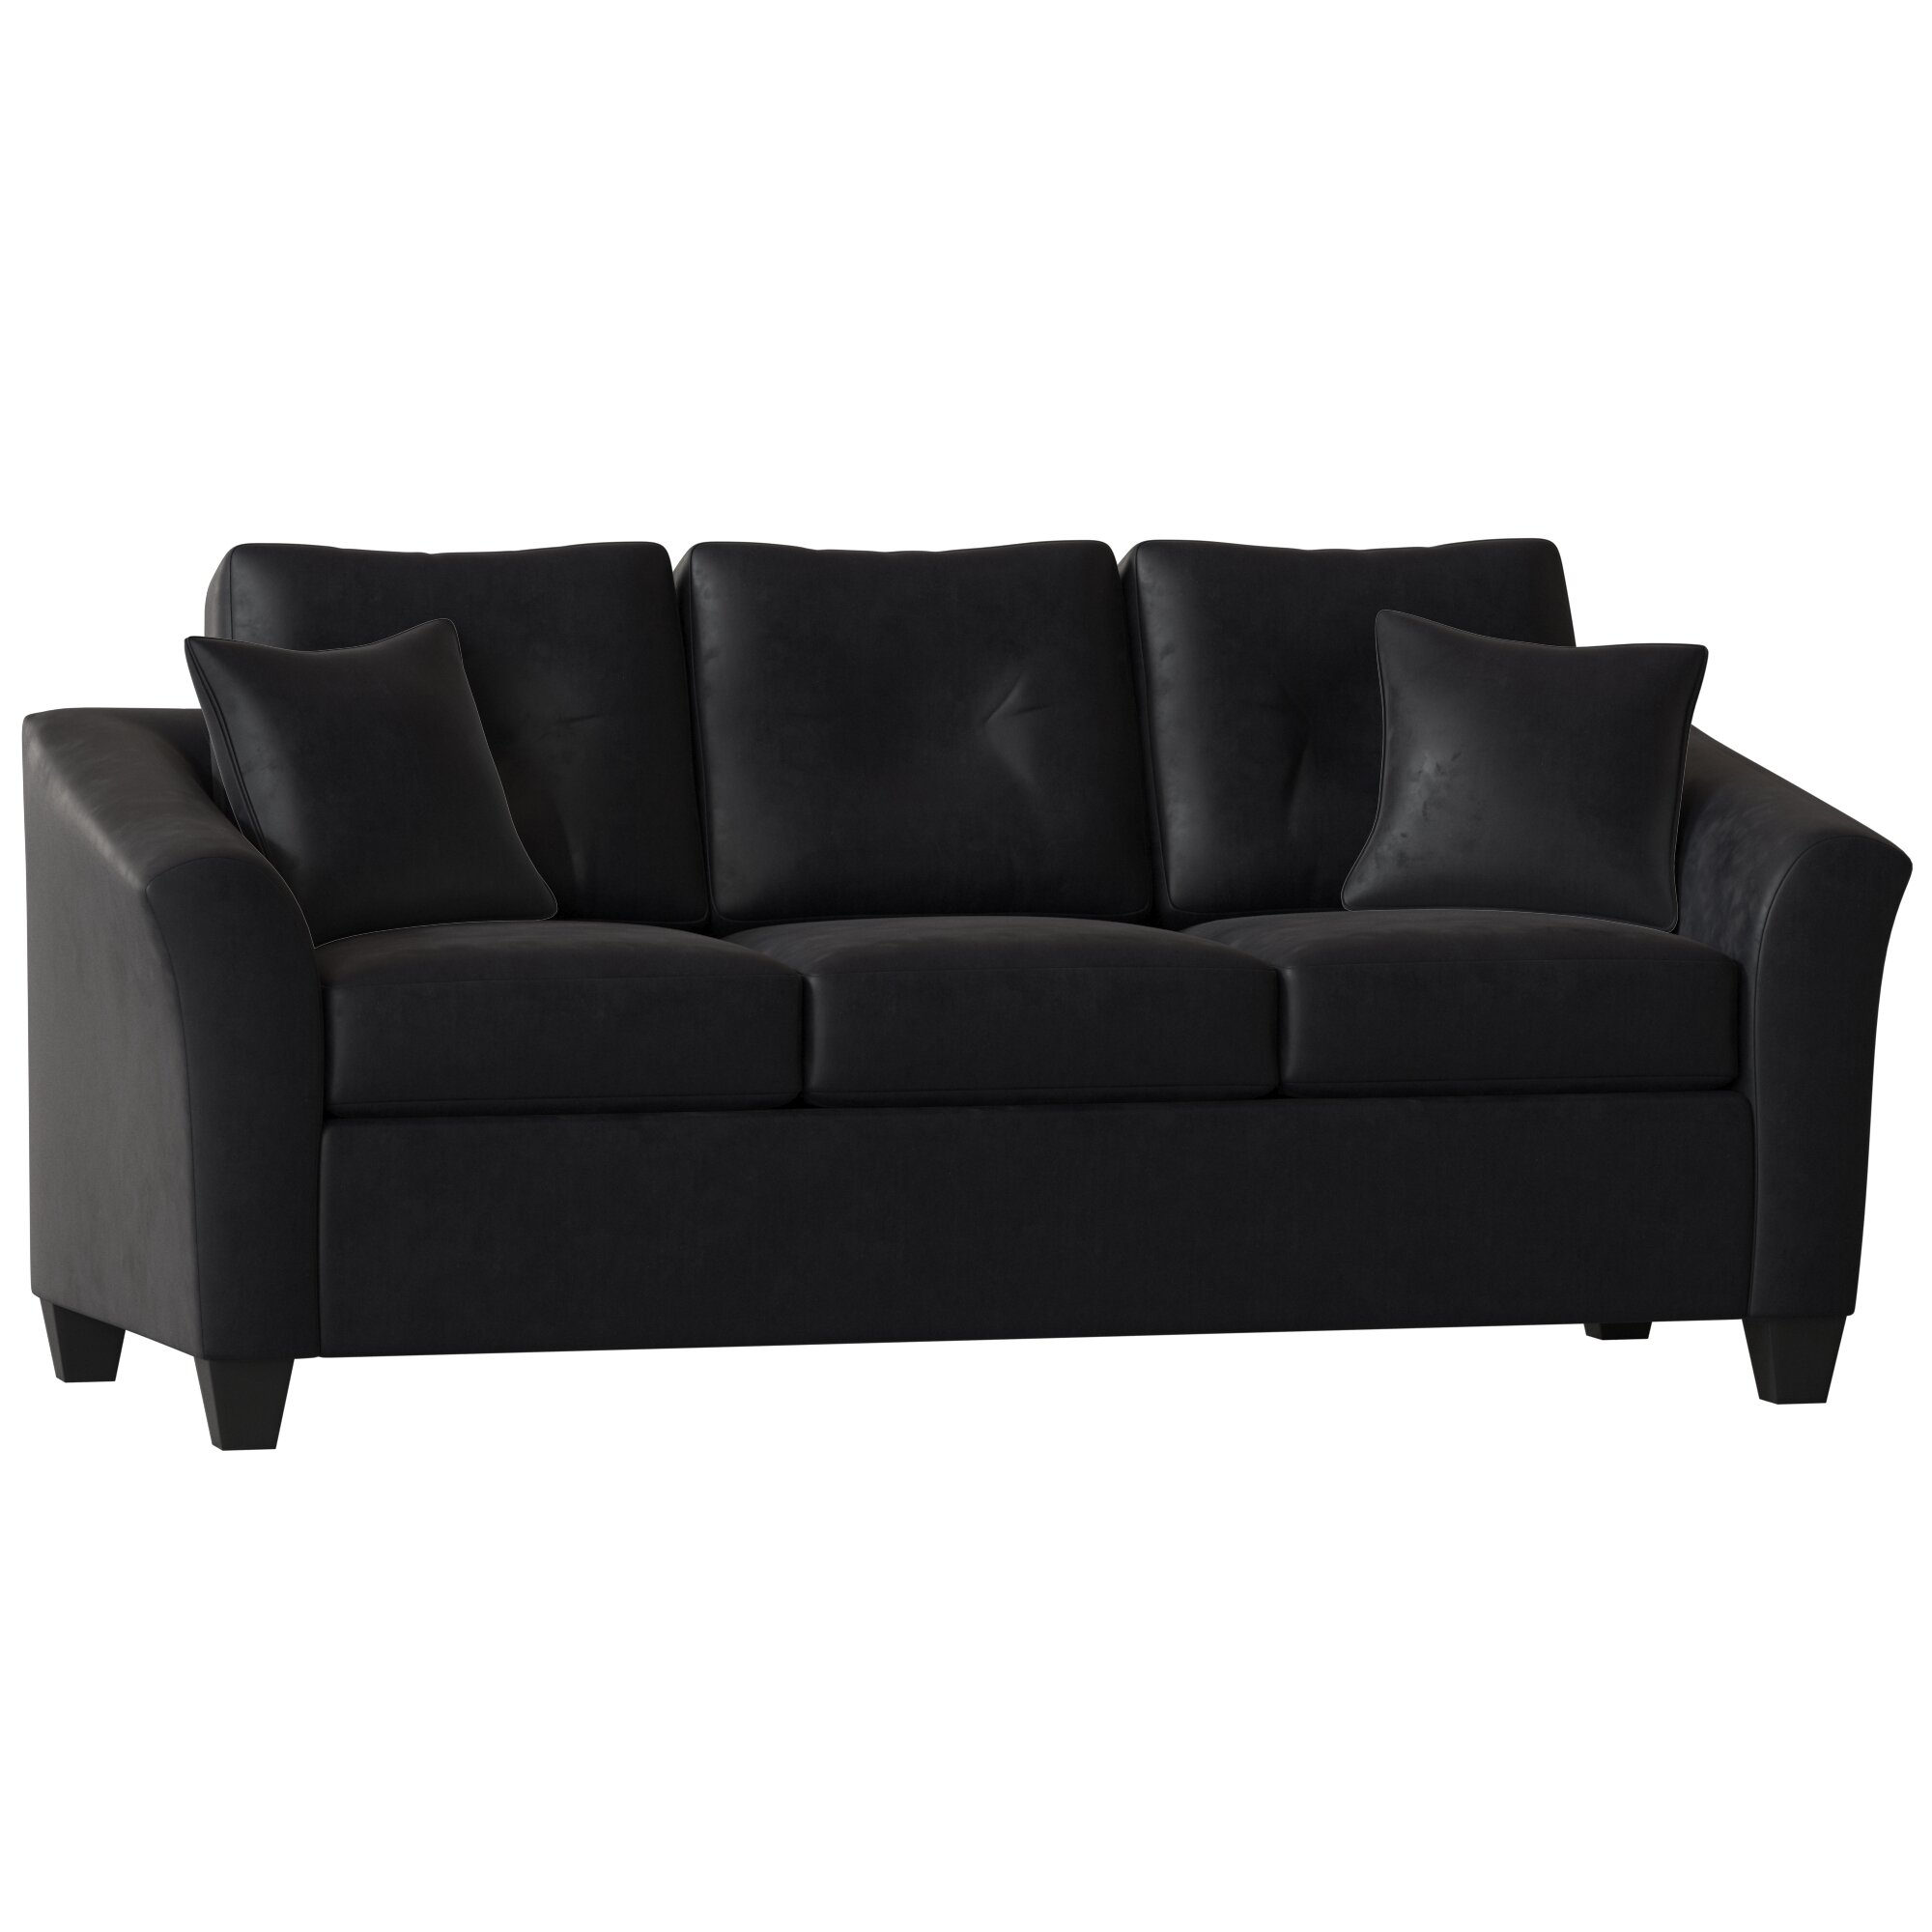 Superieur Piedmont Furniture Harmony Sofa | Wayfair